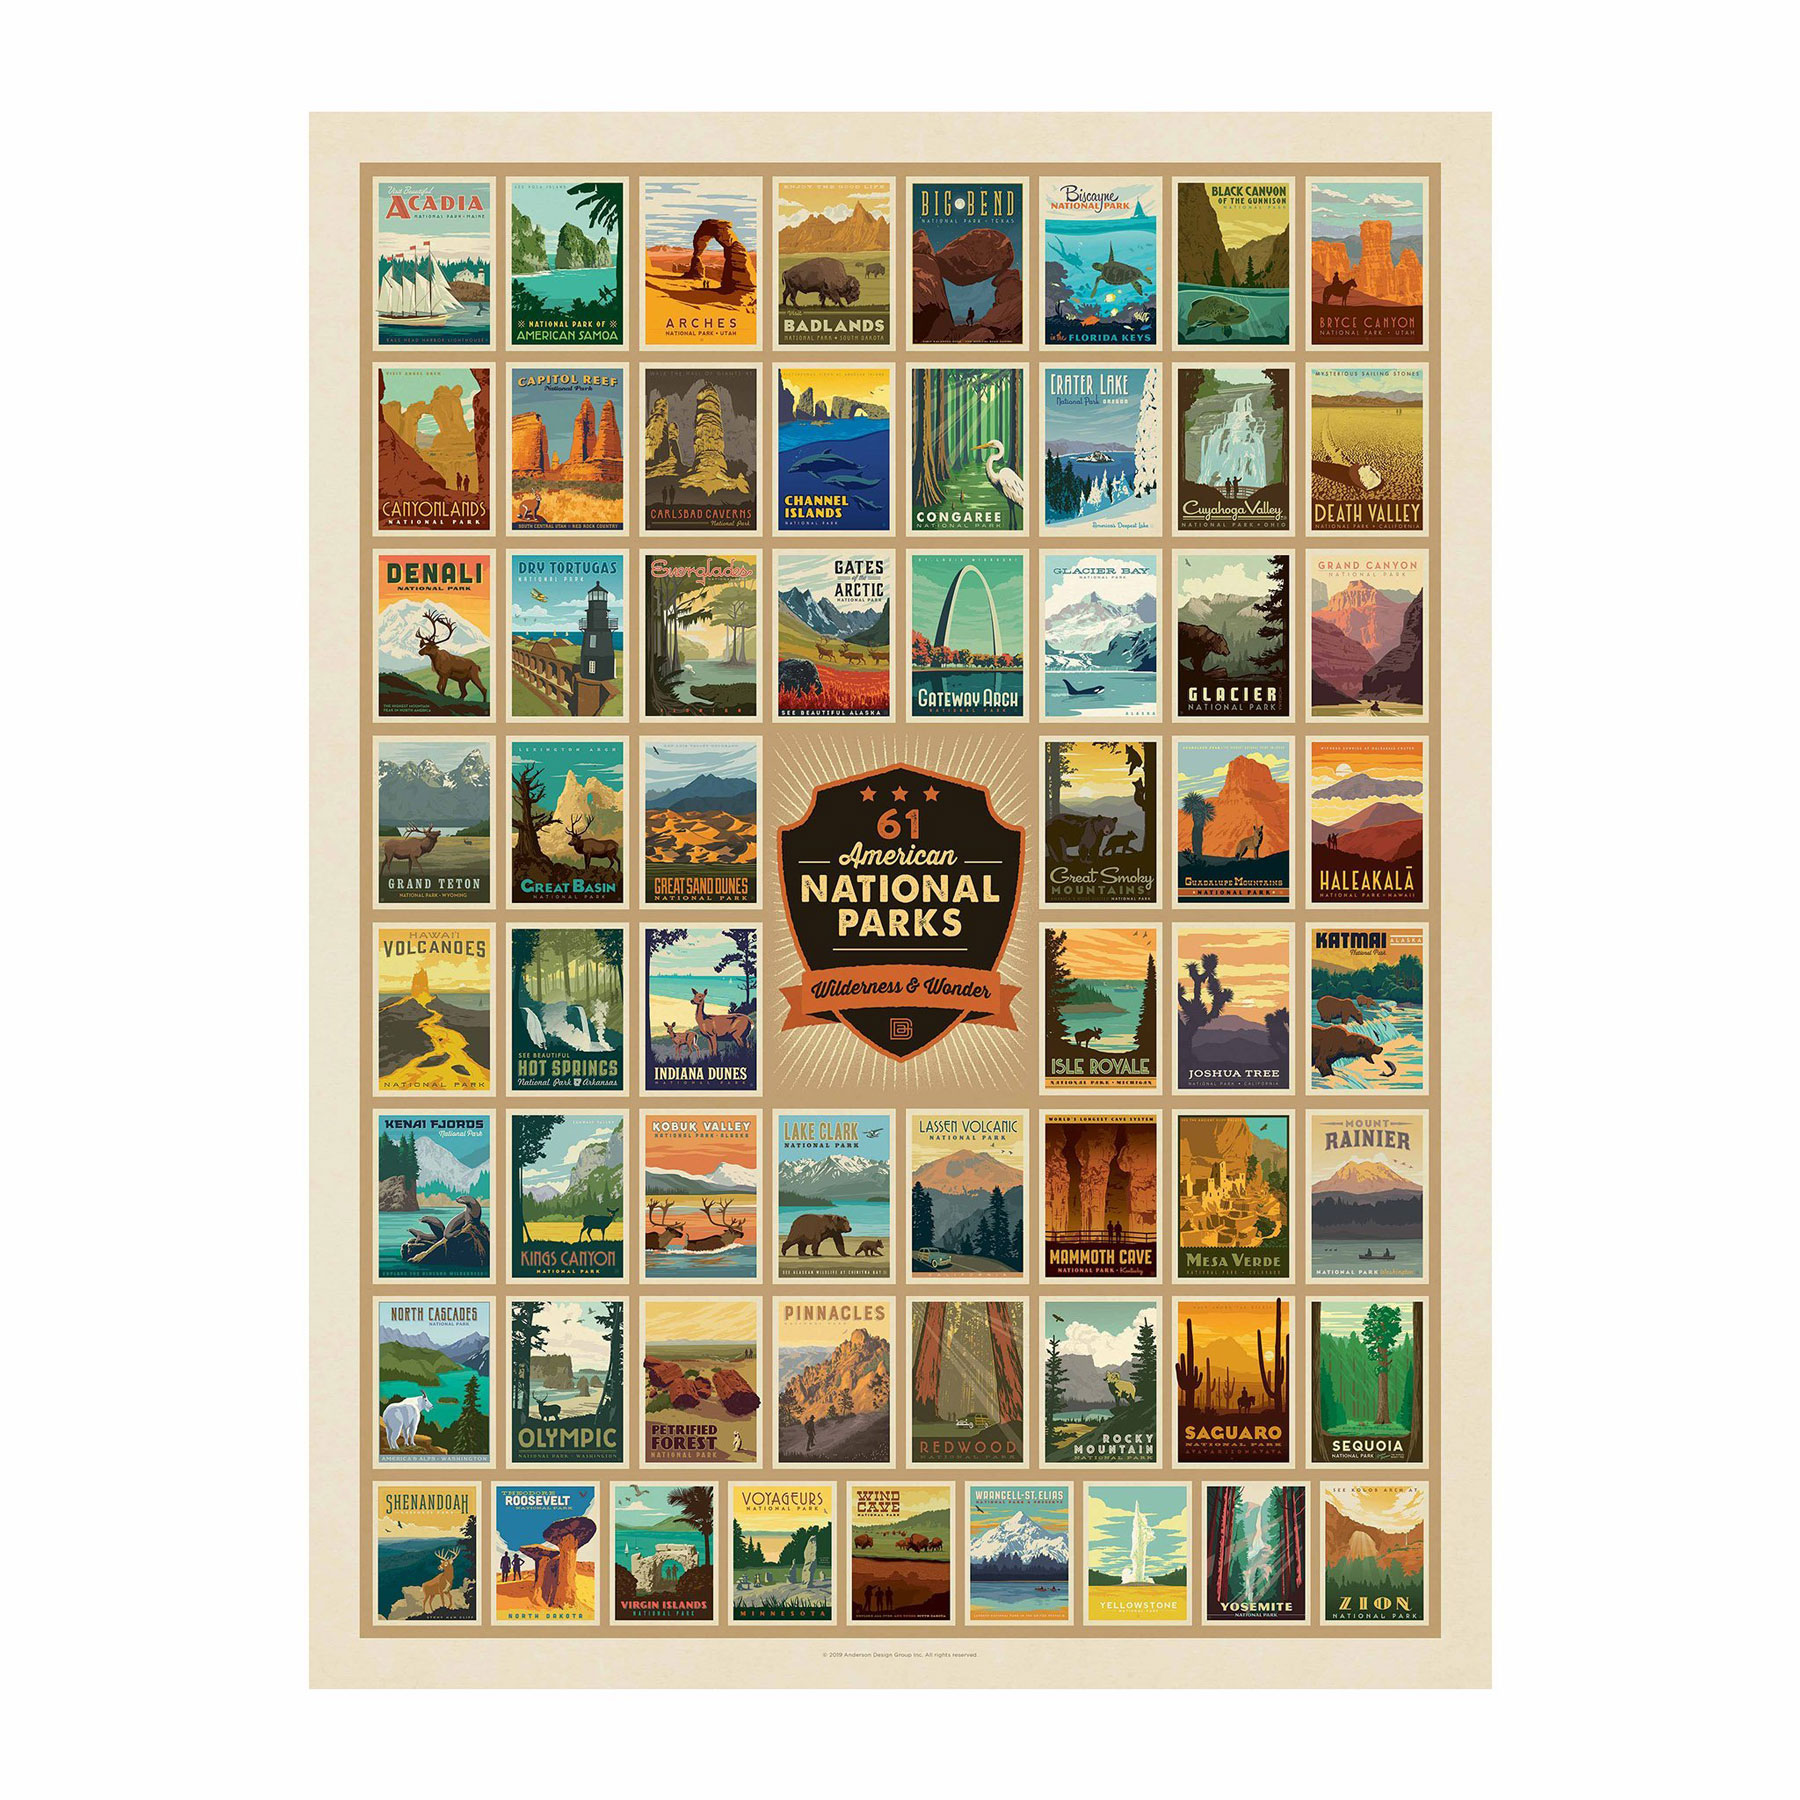 Father's Day gift ideas - Wilderness and wonder national park puzzle